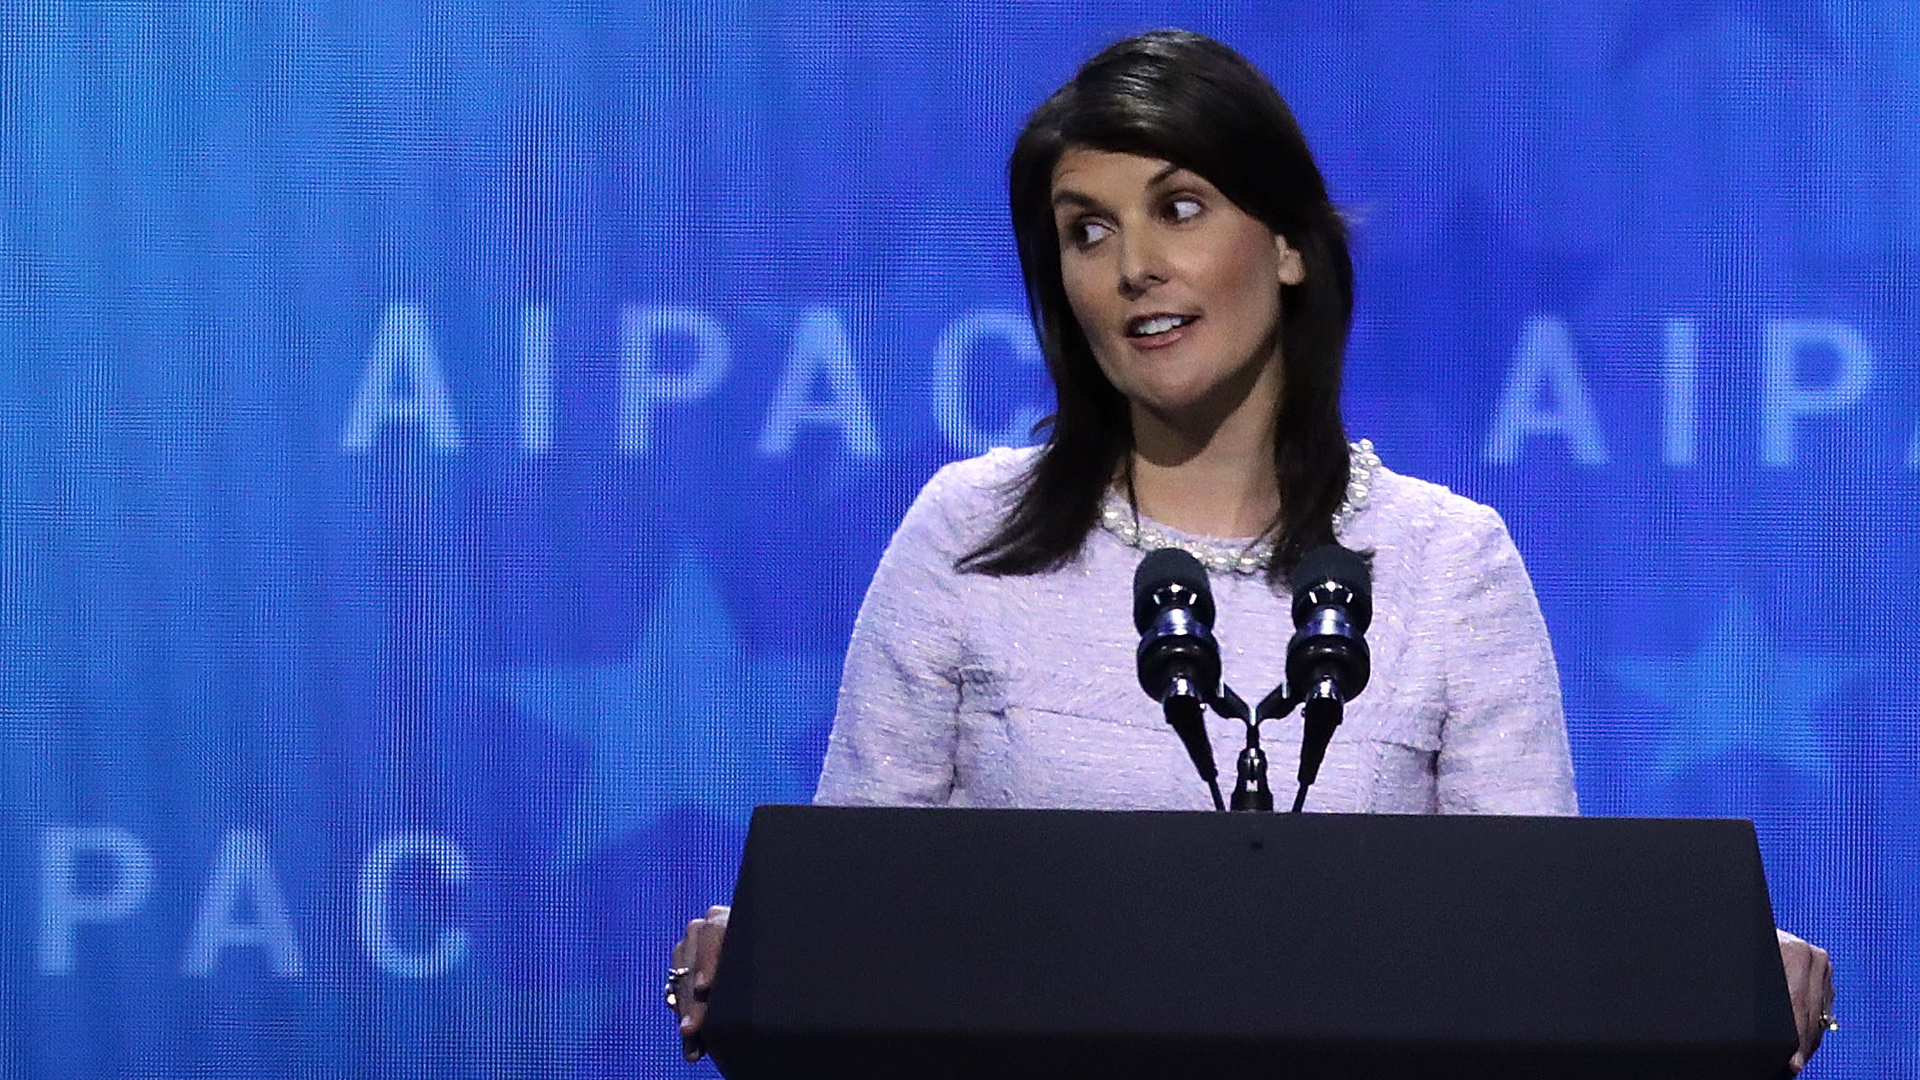 Former U.S. Ambassador to the United Nations Nikki Haley address the American Israel Public Affairs Committee's annual policy conference at the Washington Convention Center March 5, 2018, in Washington, D.C. (Credit: Chip Somodevilla/Getty Images)